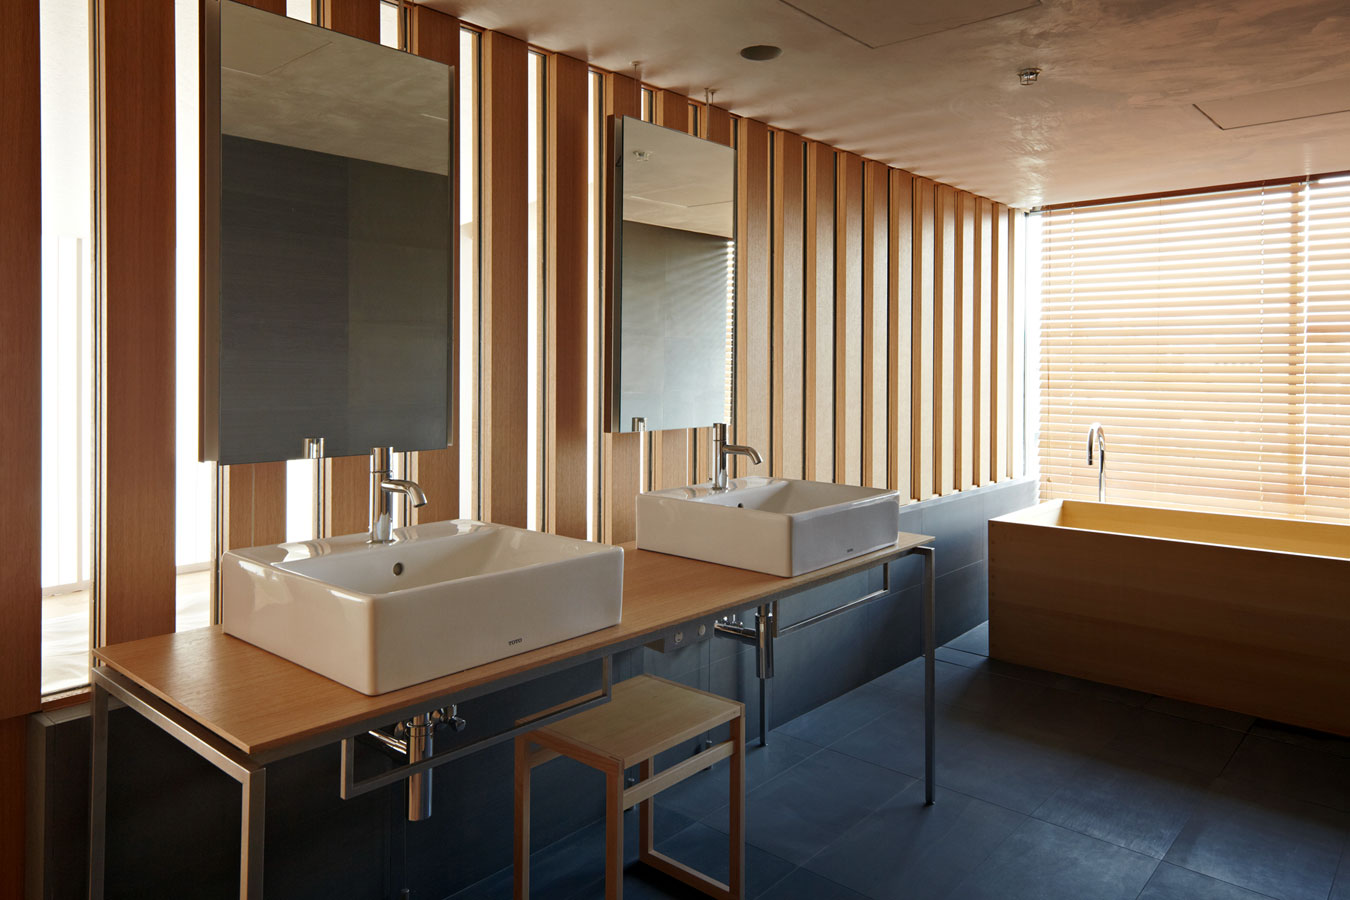 Kyoto kokusai hotel model room architecture kengo kuma and associates Japanese bathroom interior design